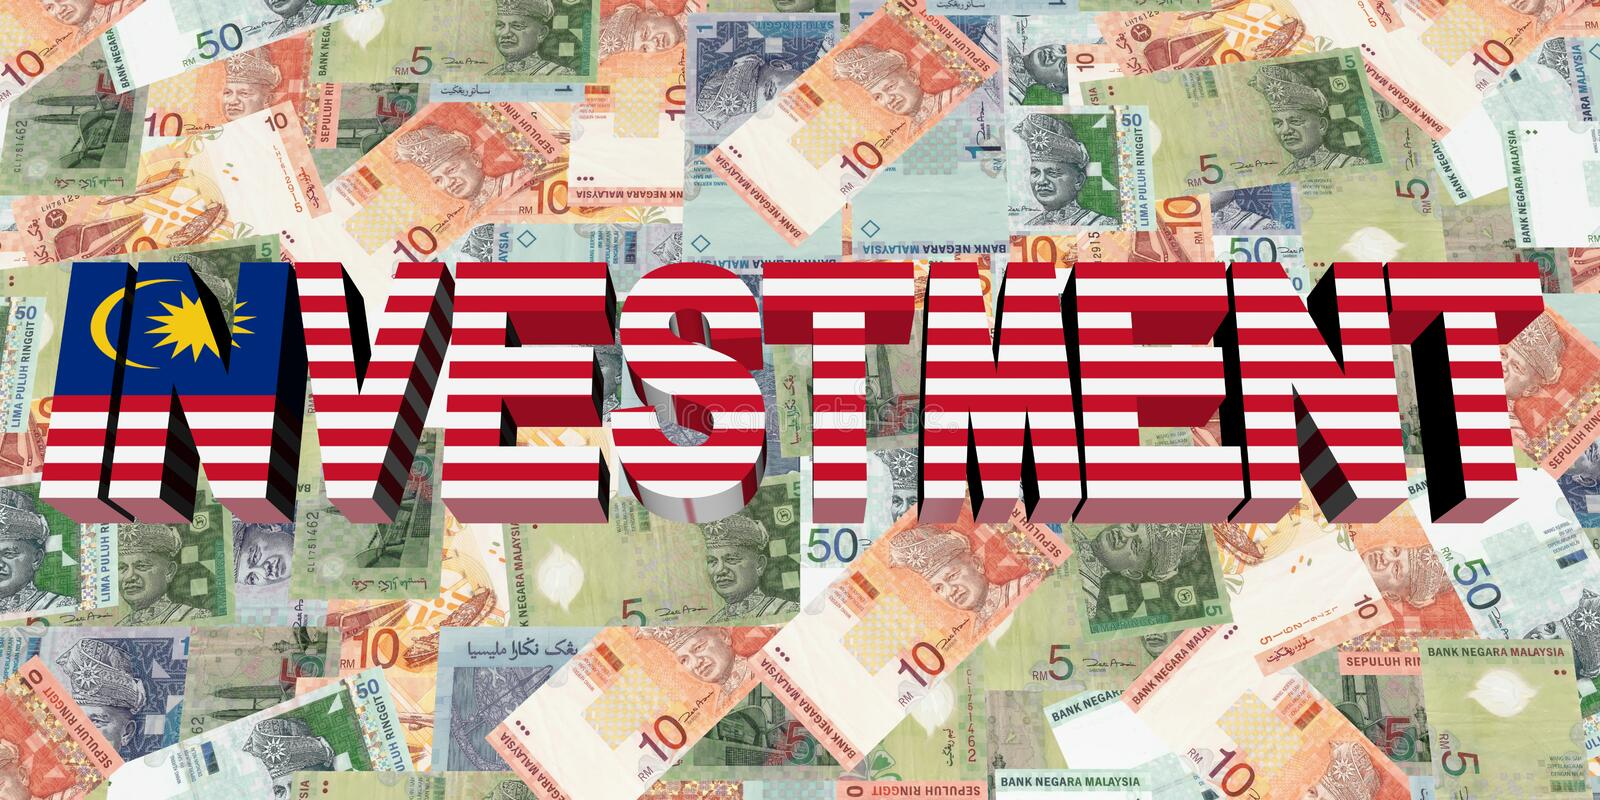 Investment text with Malaysian flag on currency illustration royalty free illustration